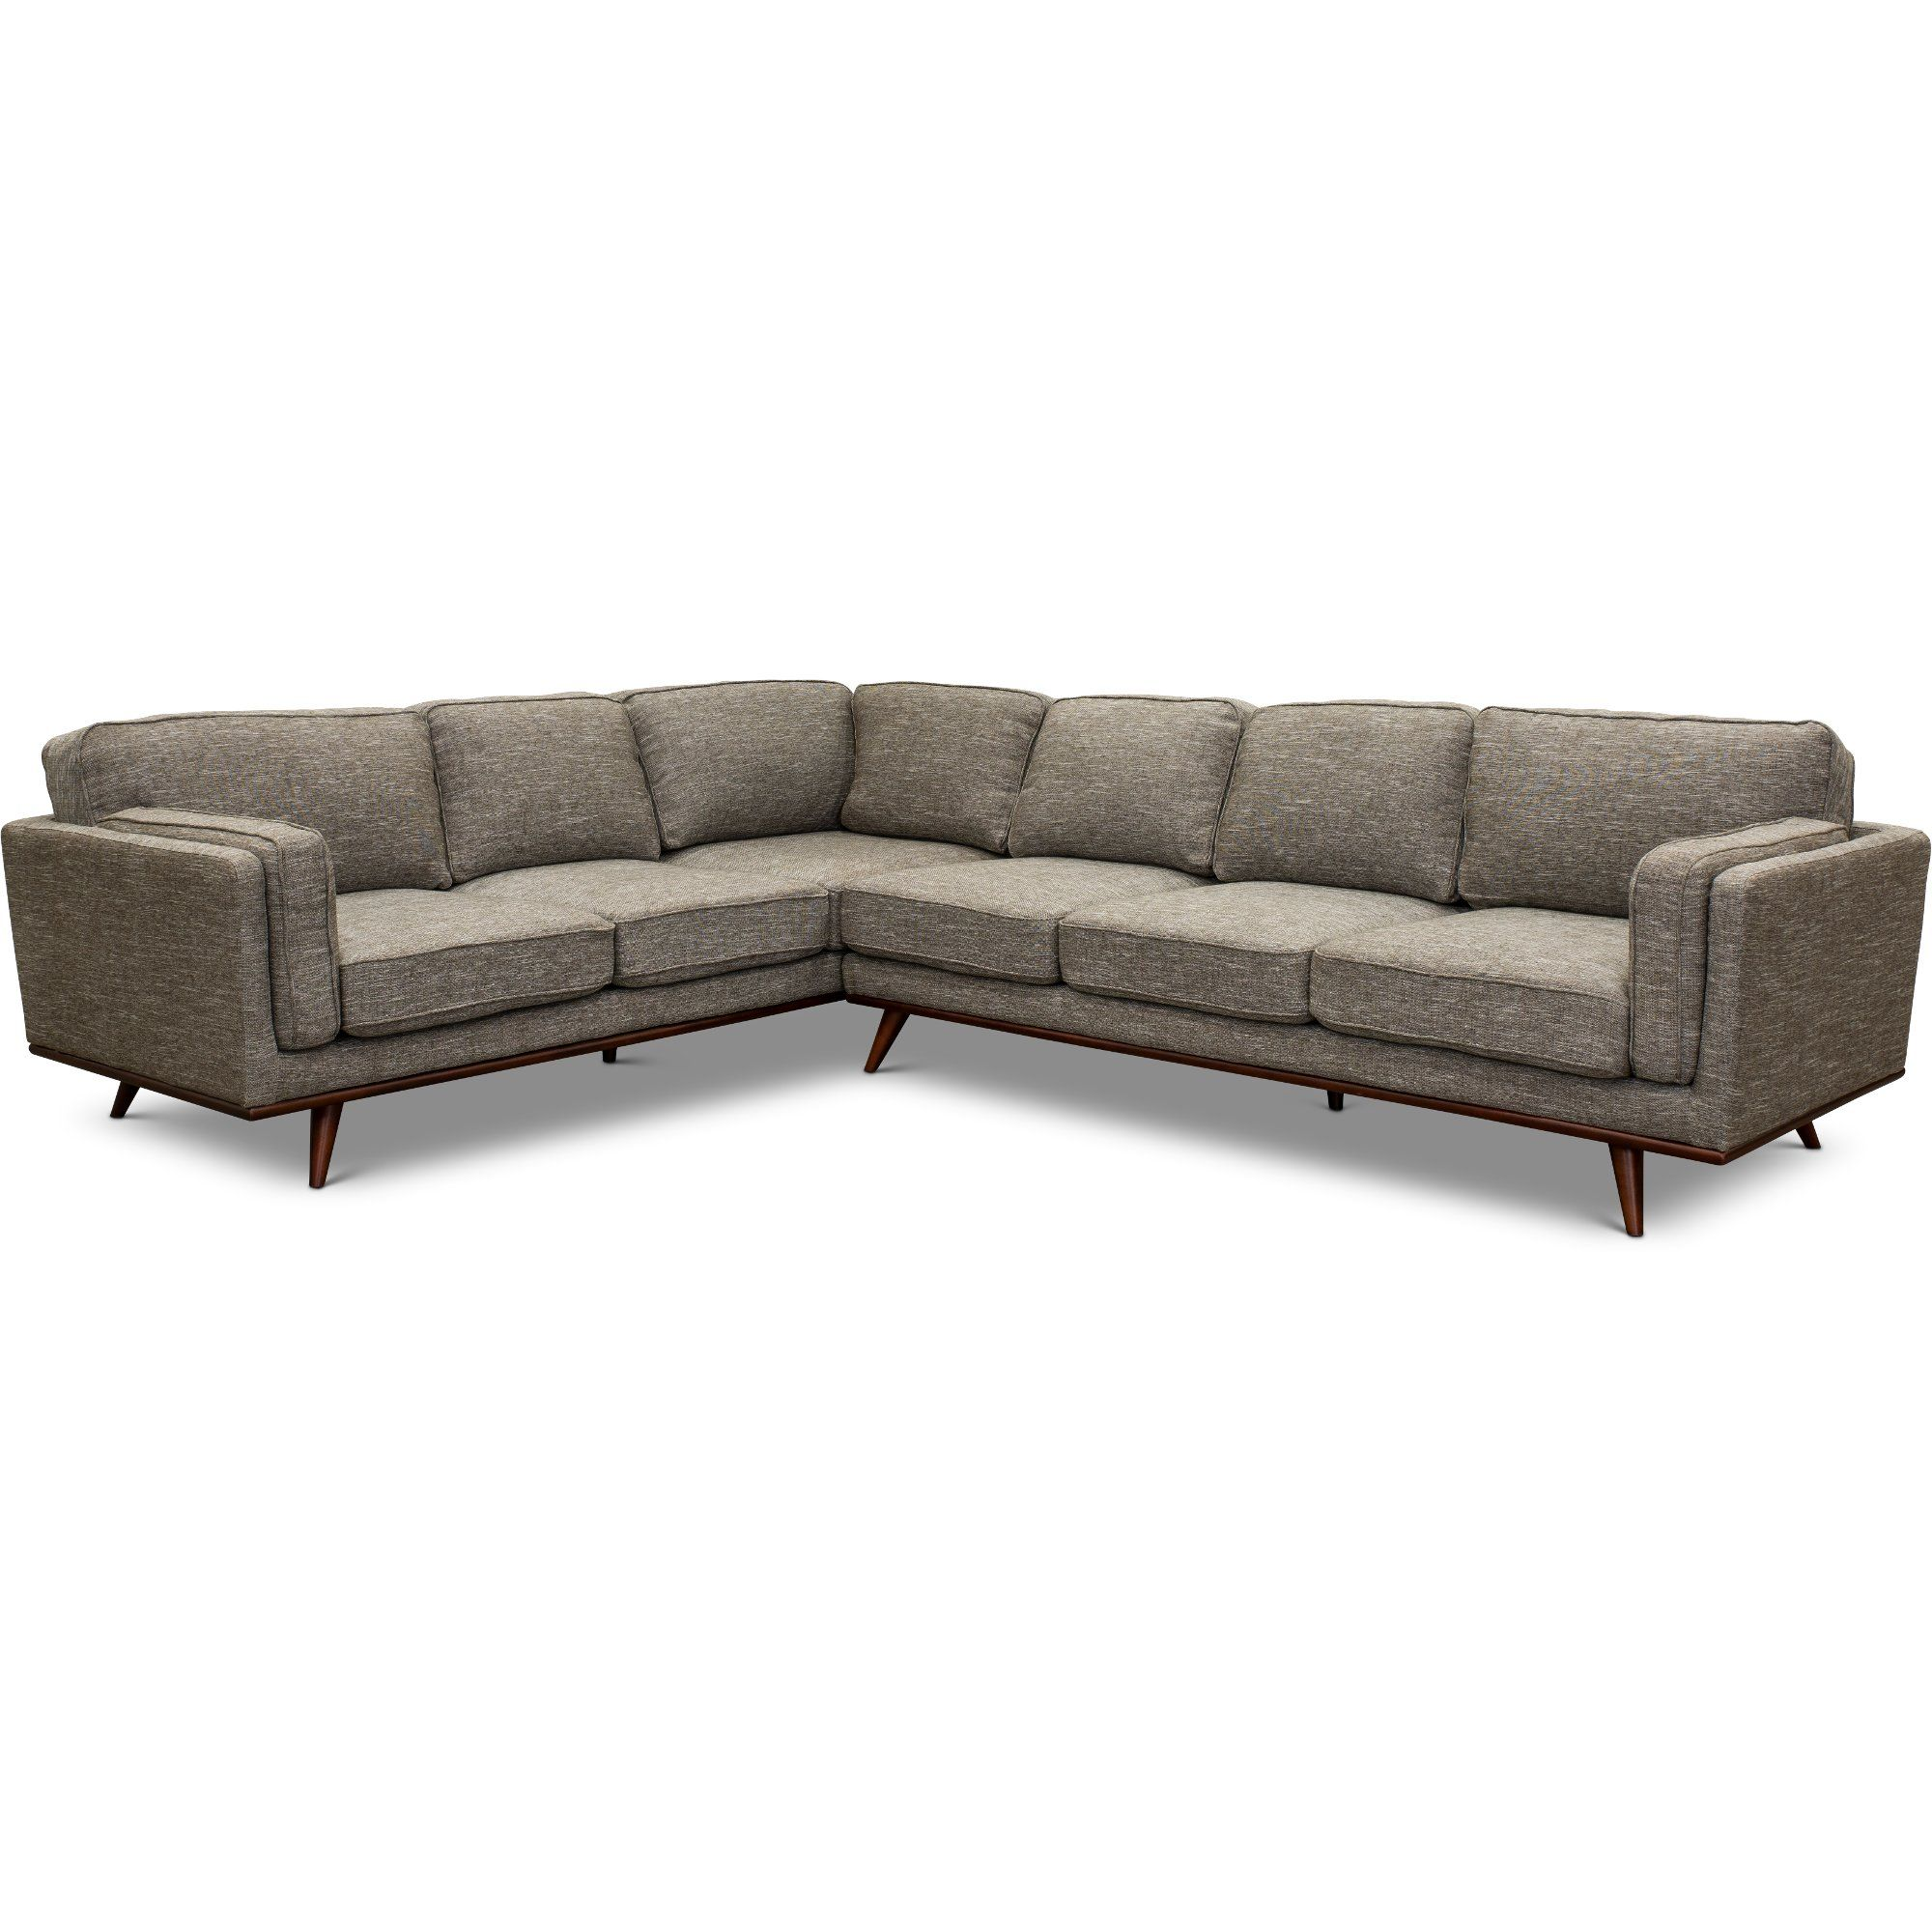 Gray 2 Piece Sectional Sofa With Raf Sofa Camden In 2020 2 Piece Sectional Sofa Sectional Sofa Modern Grey Sectional